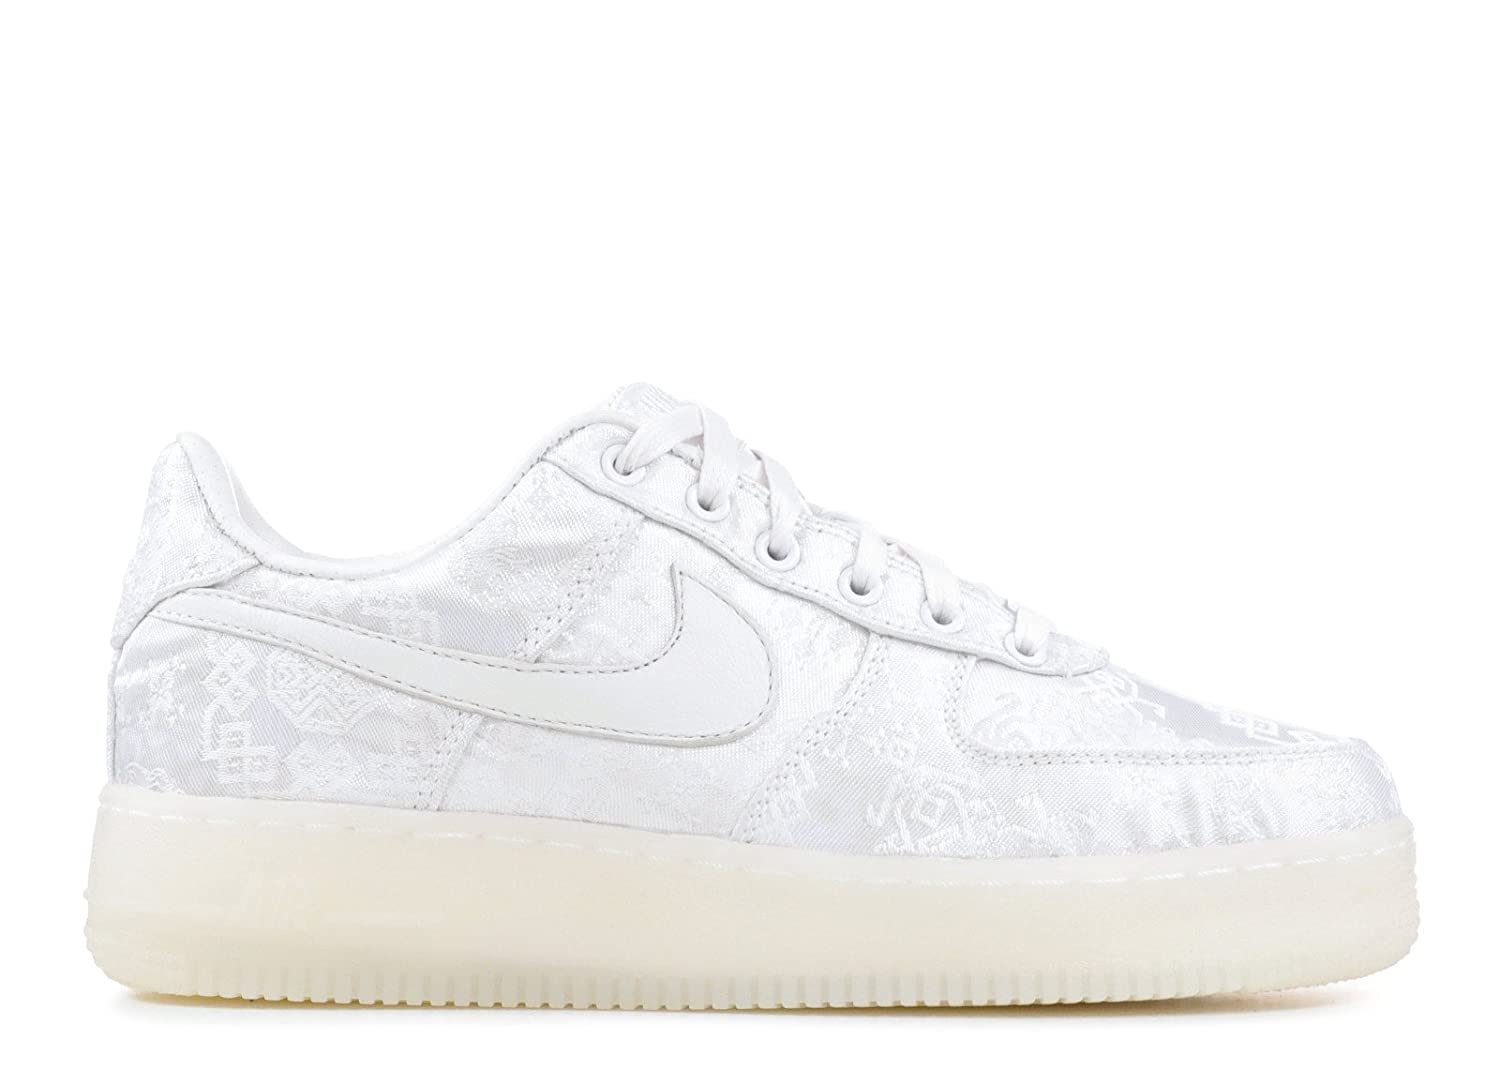 Nike AIR Force 1 PRM PRM PRM Clot 'Clot' - AO9286-100 44ecd7